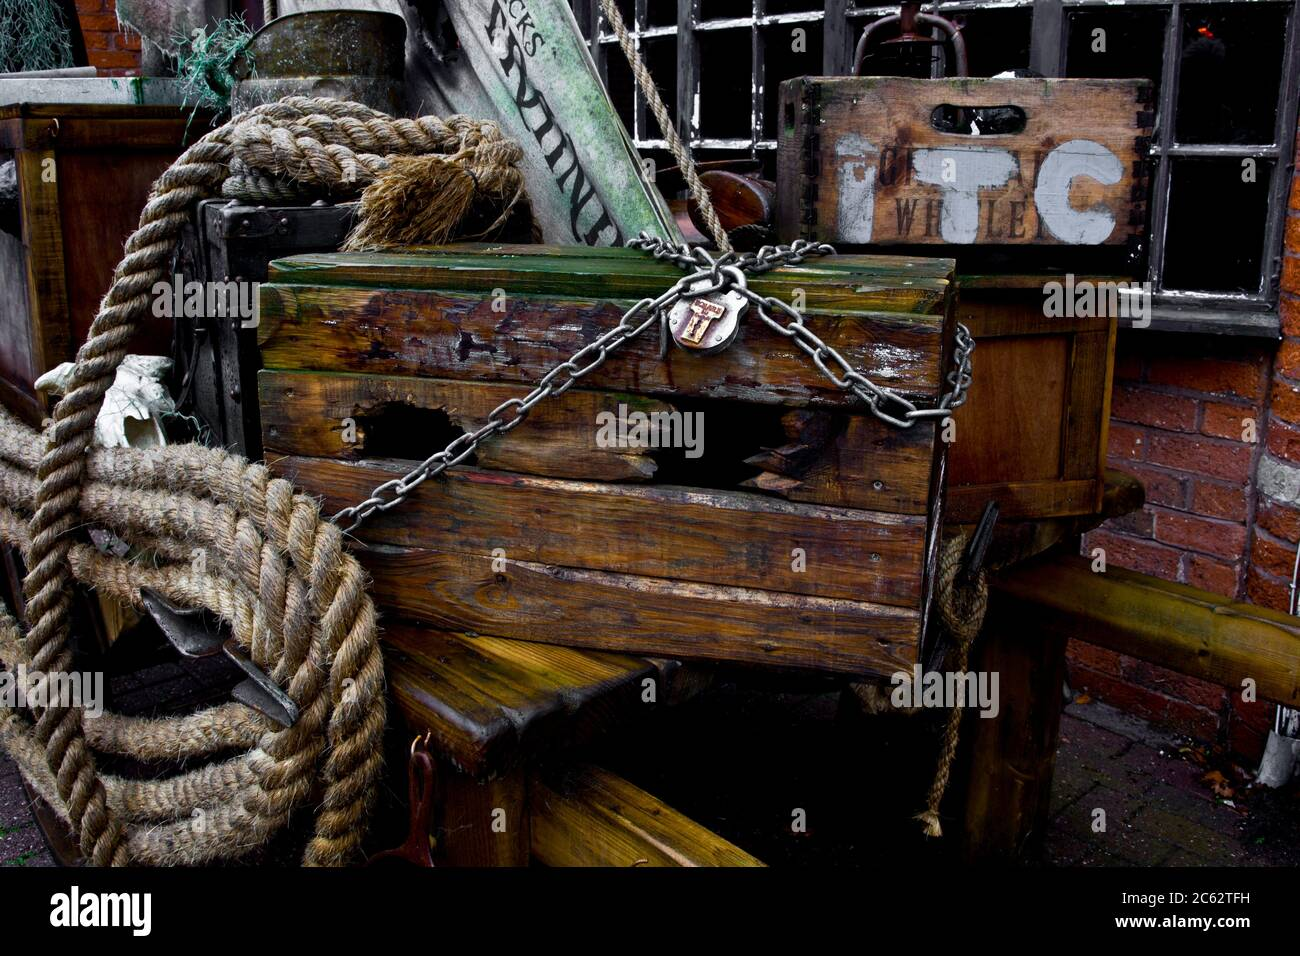 https www alamy com pirate chest a pirates bounty a pirates booty treasure chest rope chain lock wooden crate image365168821 html